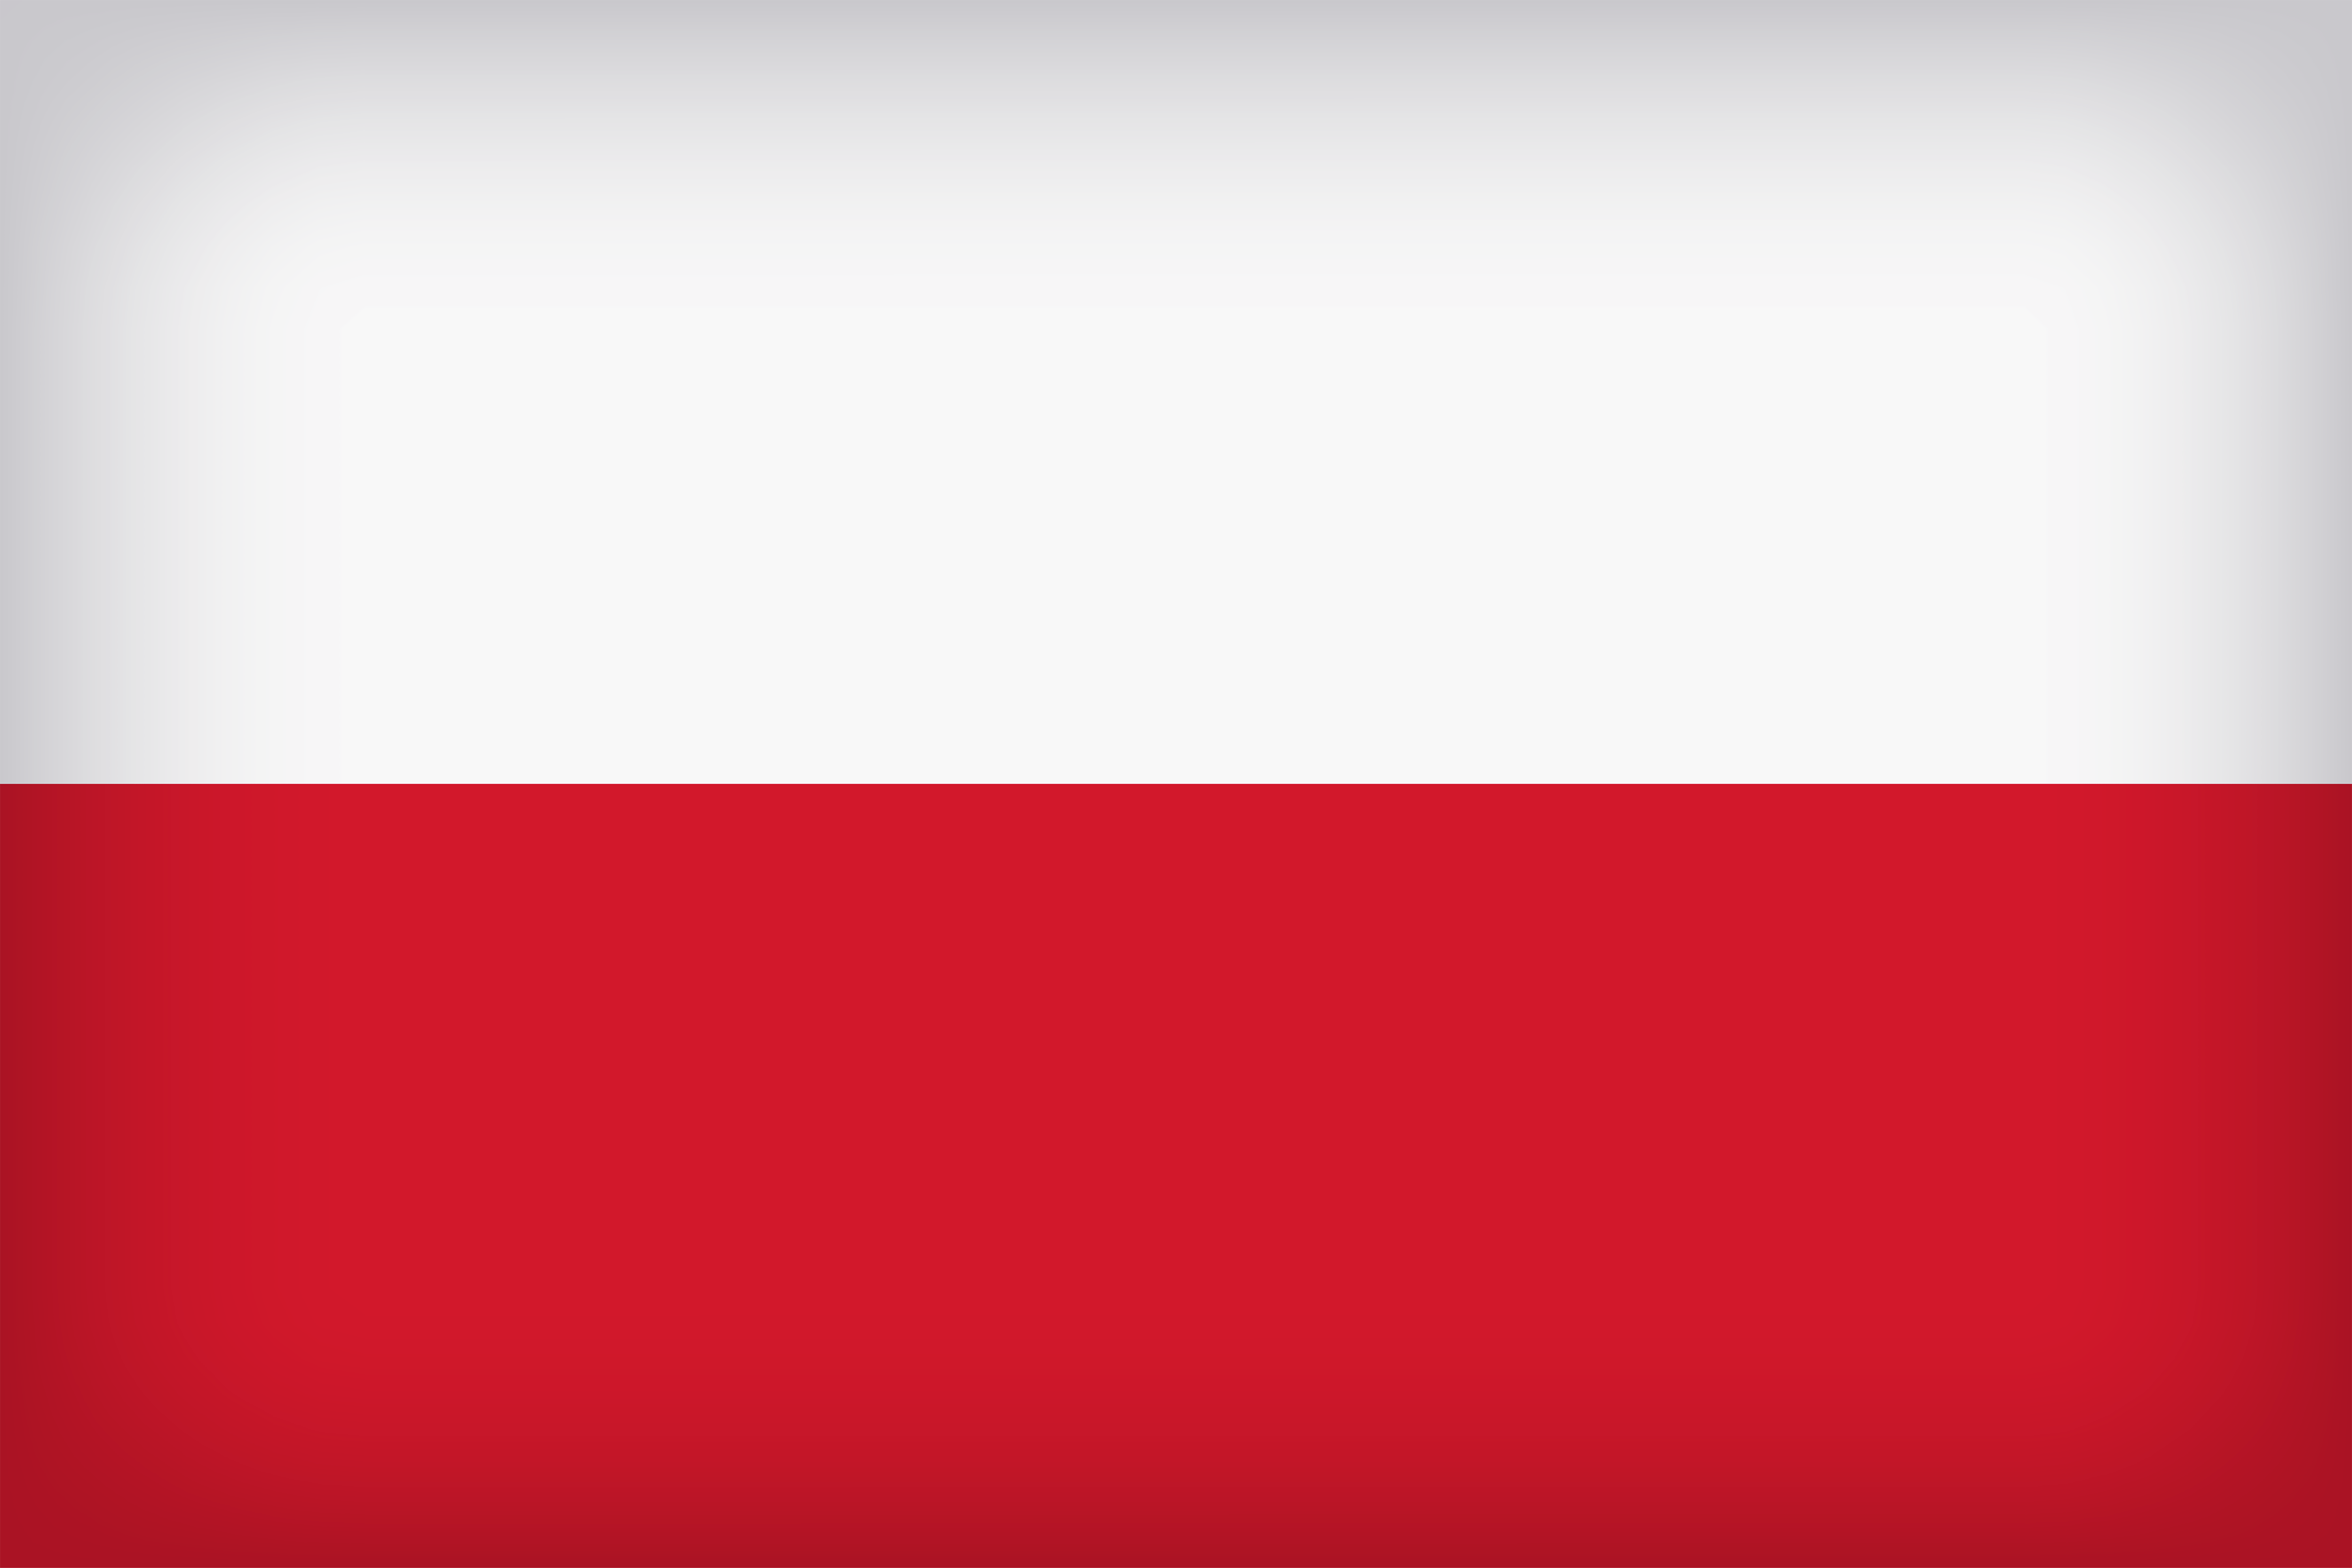 Poland Large Flag | Gallery Yopriceville - High-Quality Images ...